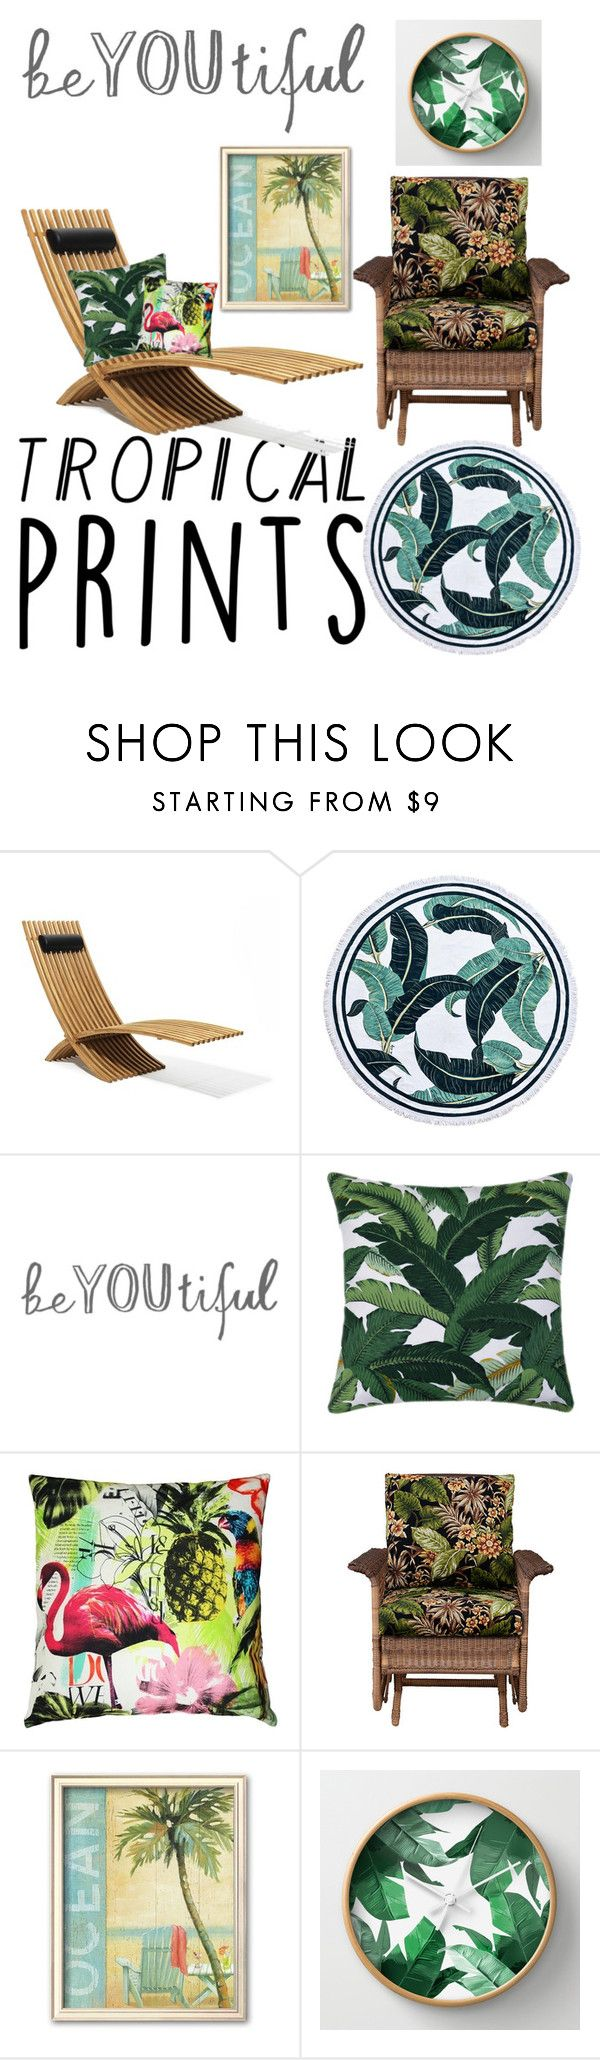 """""""Tropical Print"""" by calbug2003 ❤ liked on Polyvore featuring interior, interiors, interior design, home, home decor, interior decorating, Pillow Decor, Improvements and tropicalprints"""